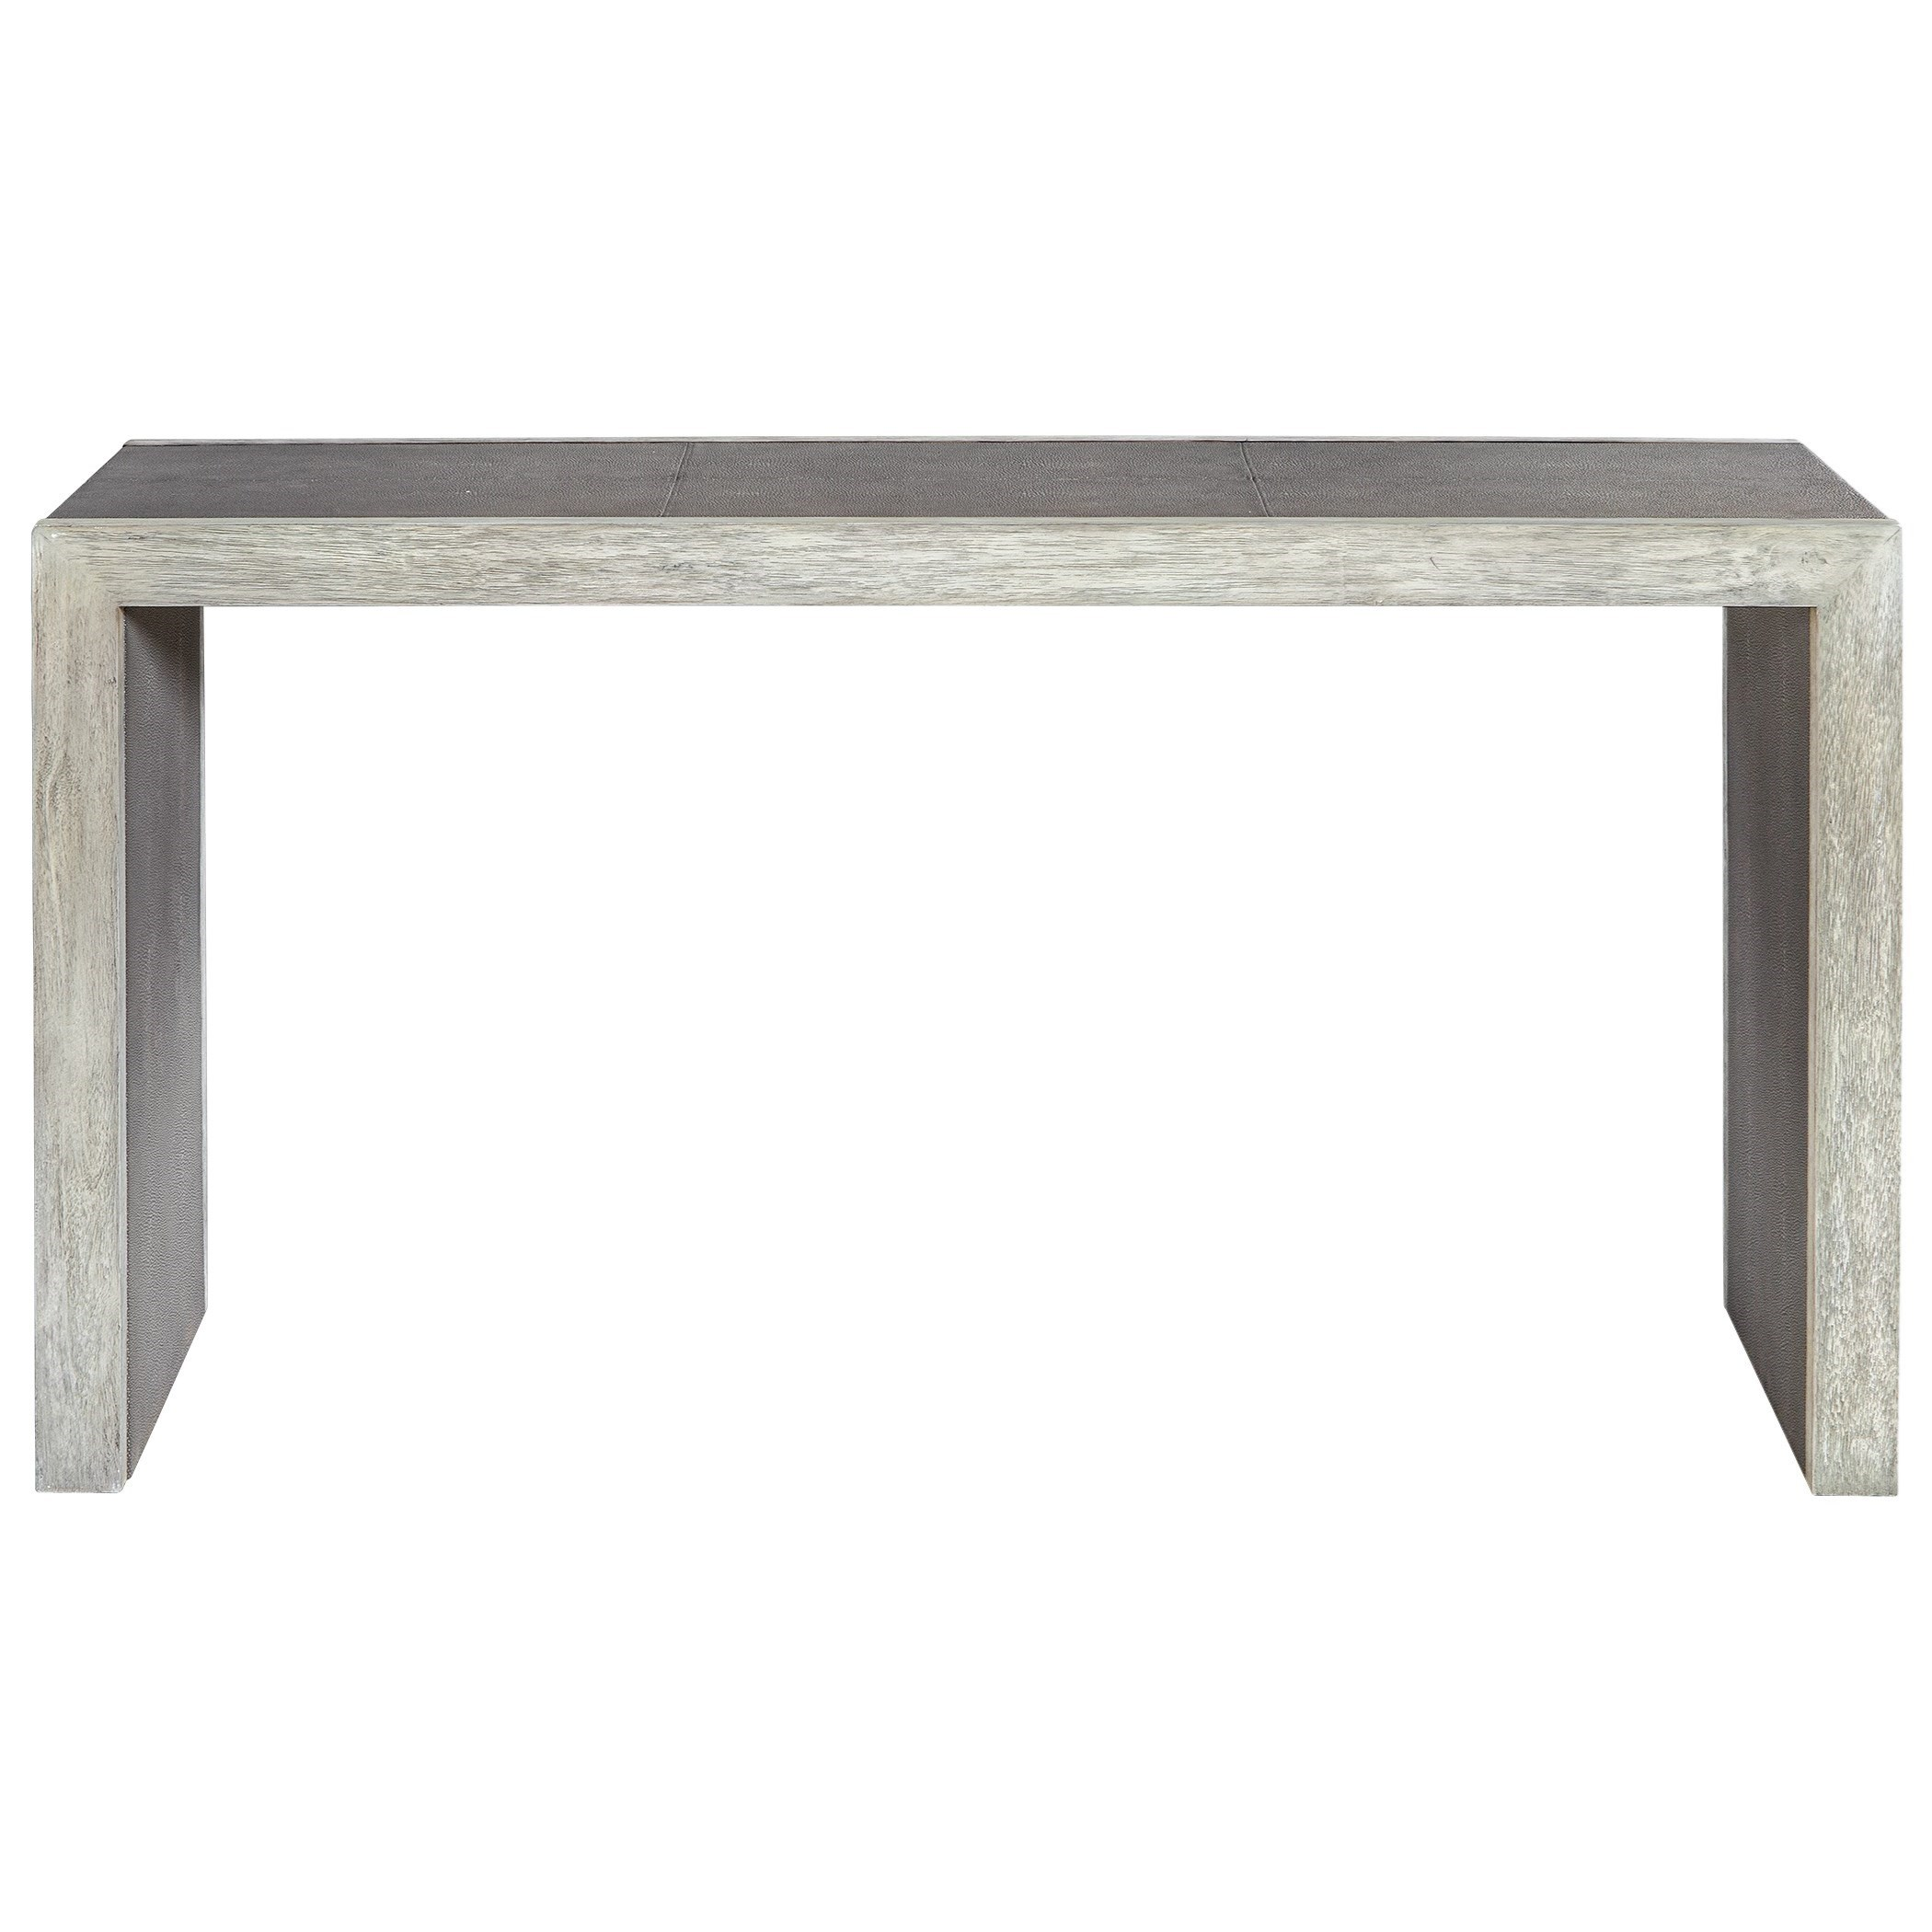 Accent Furniture - Occasional Tables Aerina Aged Gray Console Table by Uttermost at Dunk & Bright Furniture